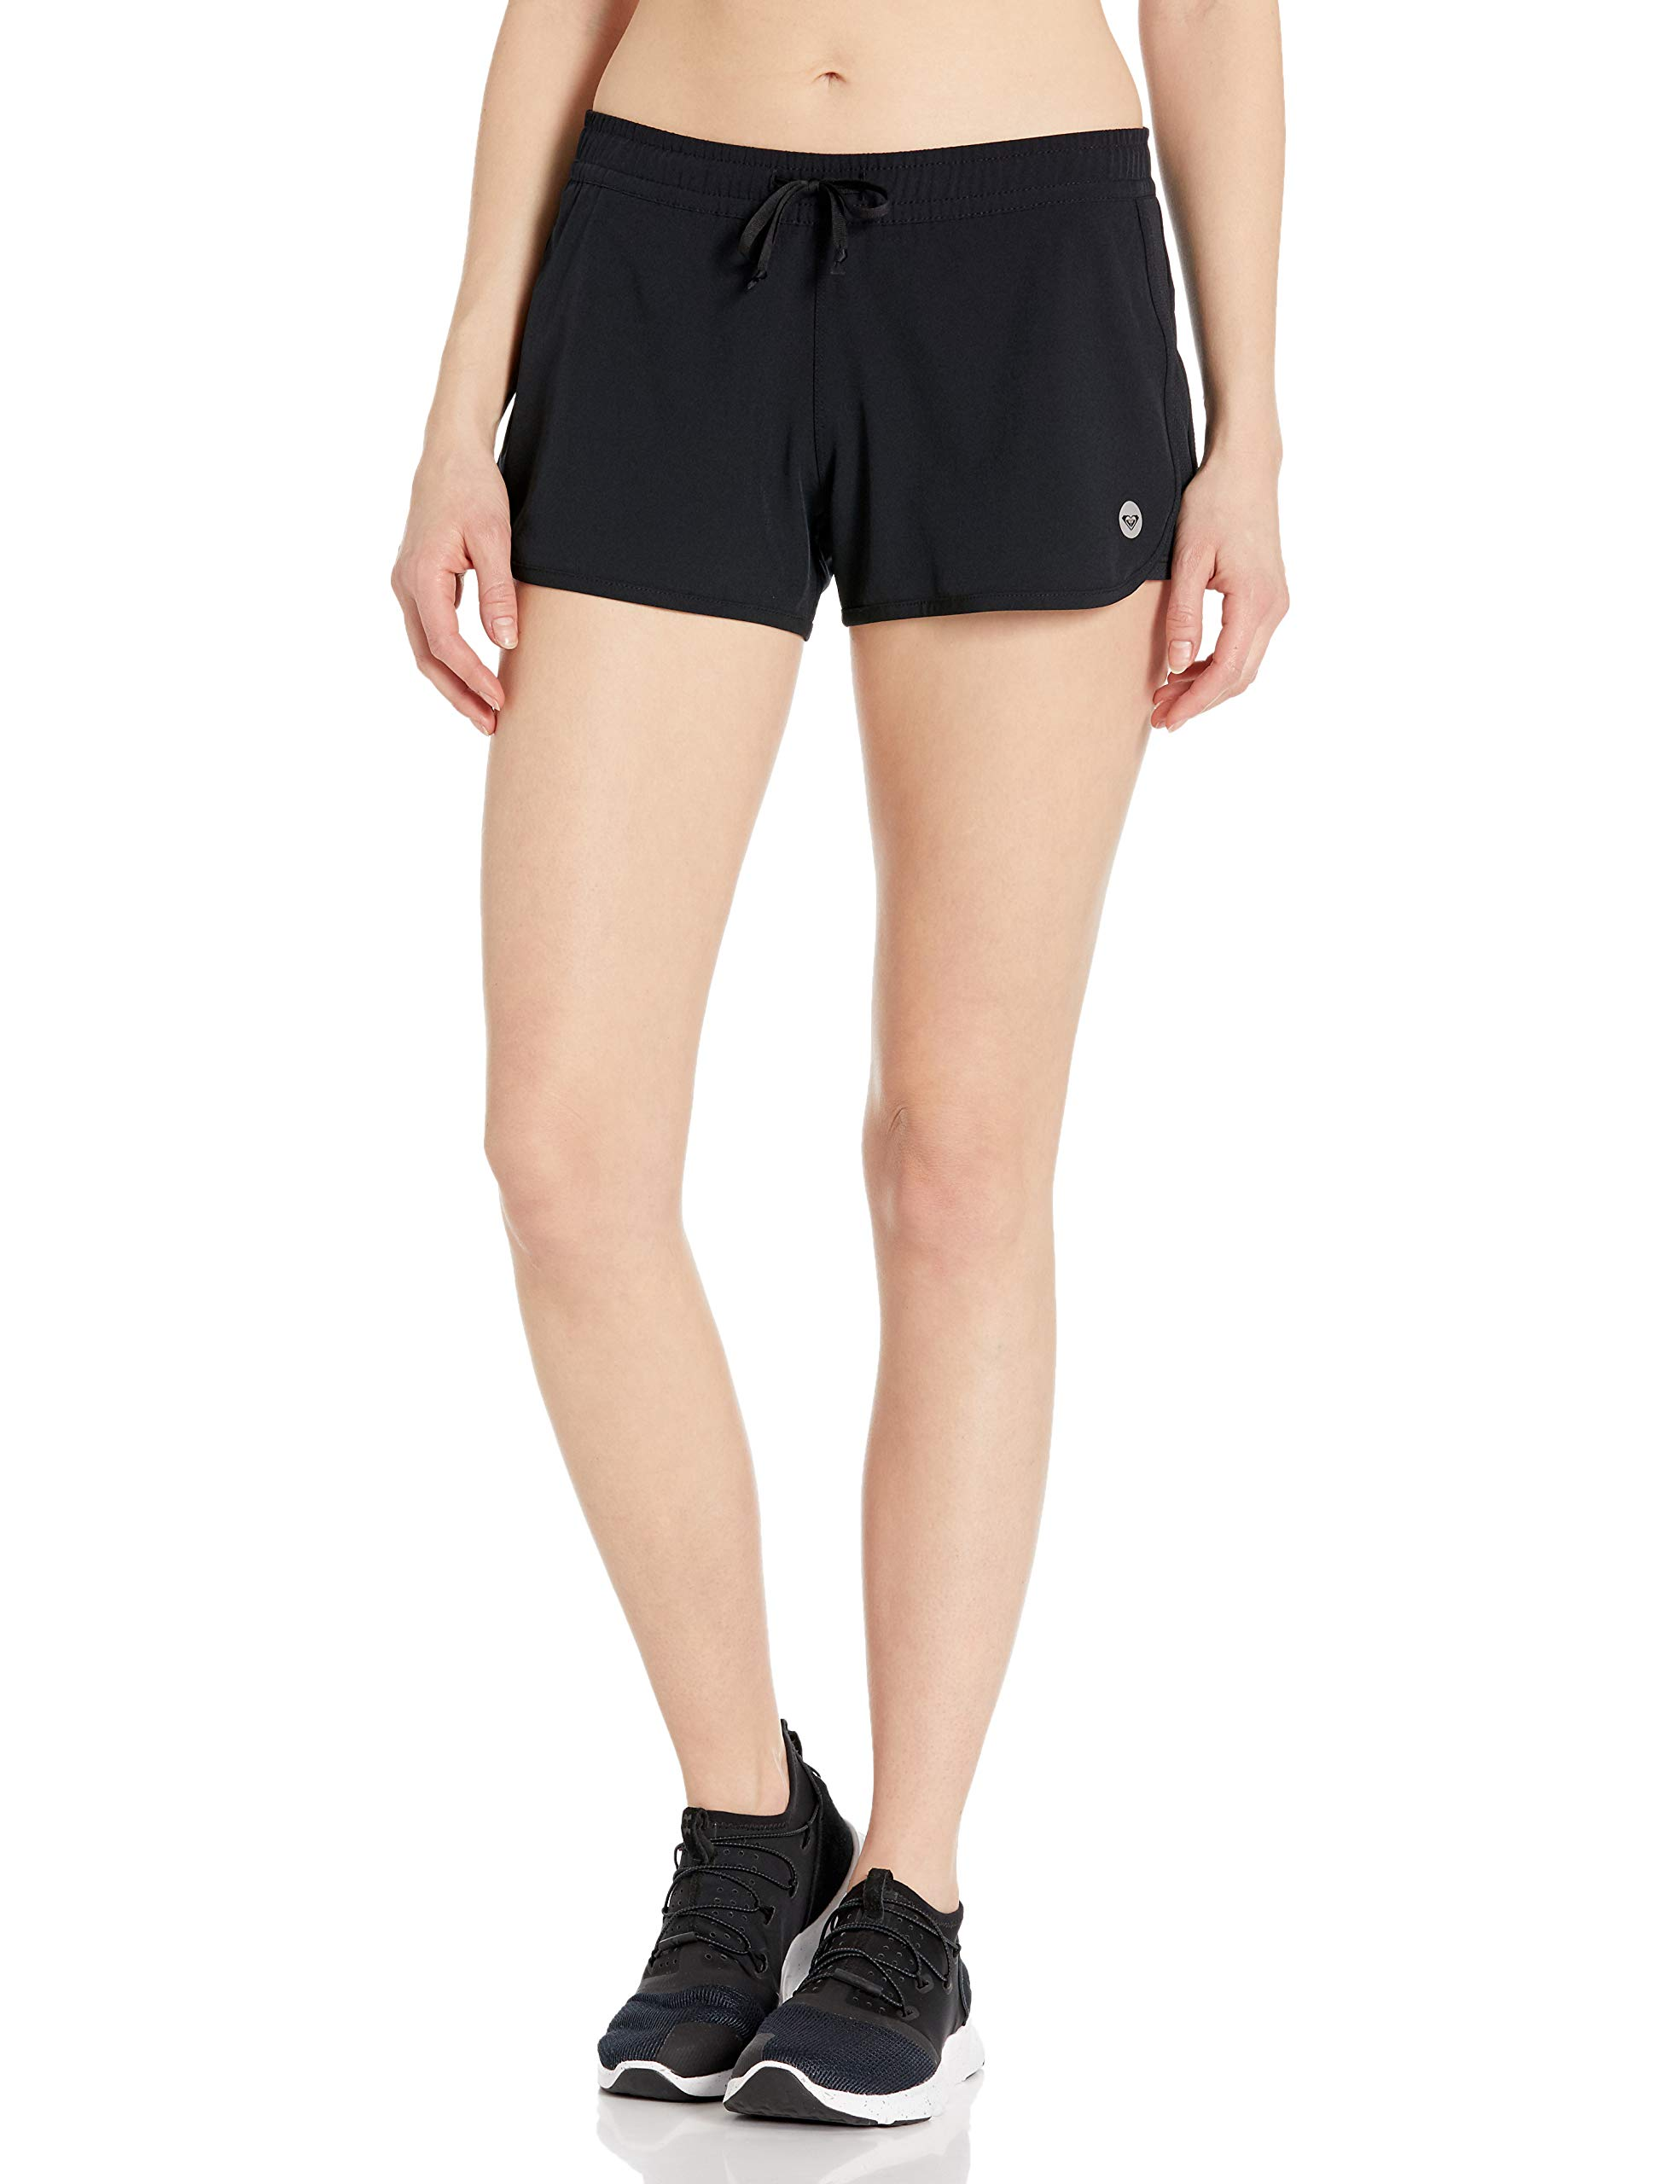 Roxy Women's All in Time Short